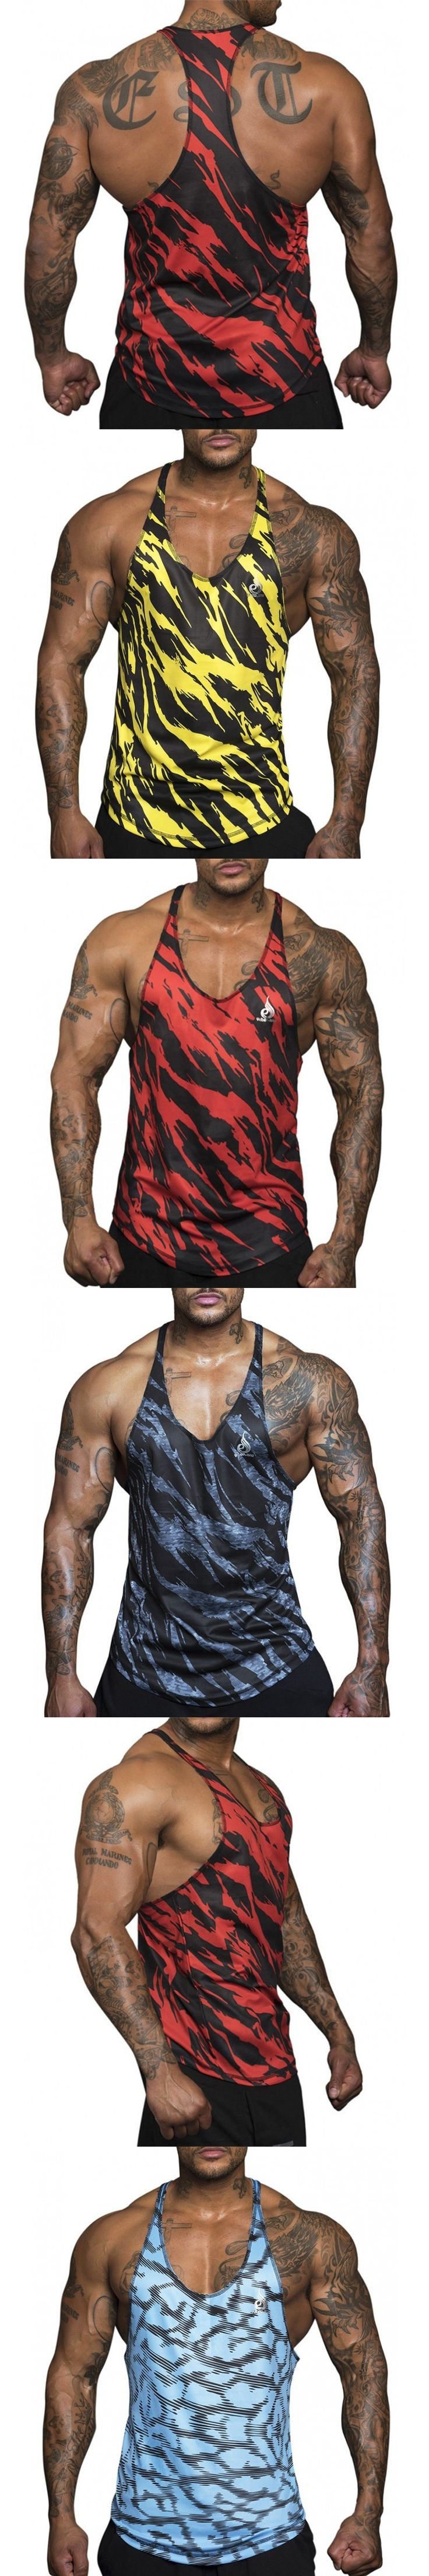 2017 gyms Singlets Camouflage Quick dry Tank Tops Shirt Bodybuilding Equipment Fitness Men's Golds GymStringer